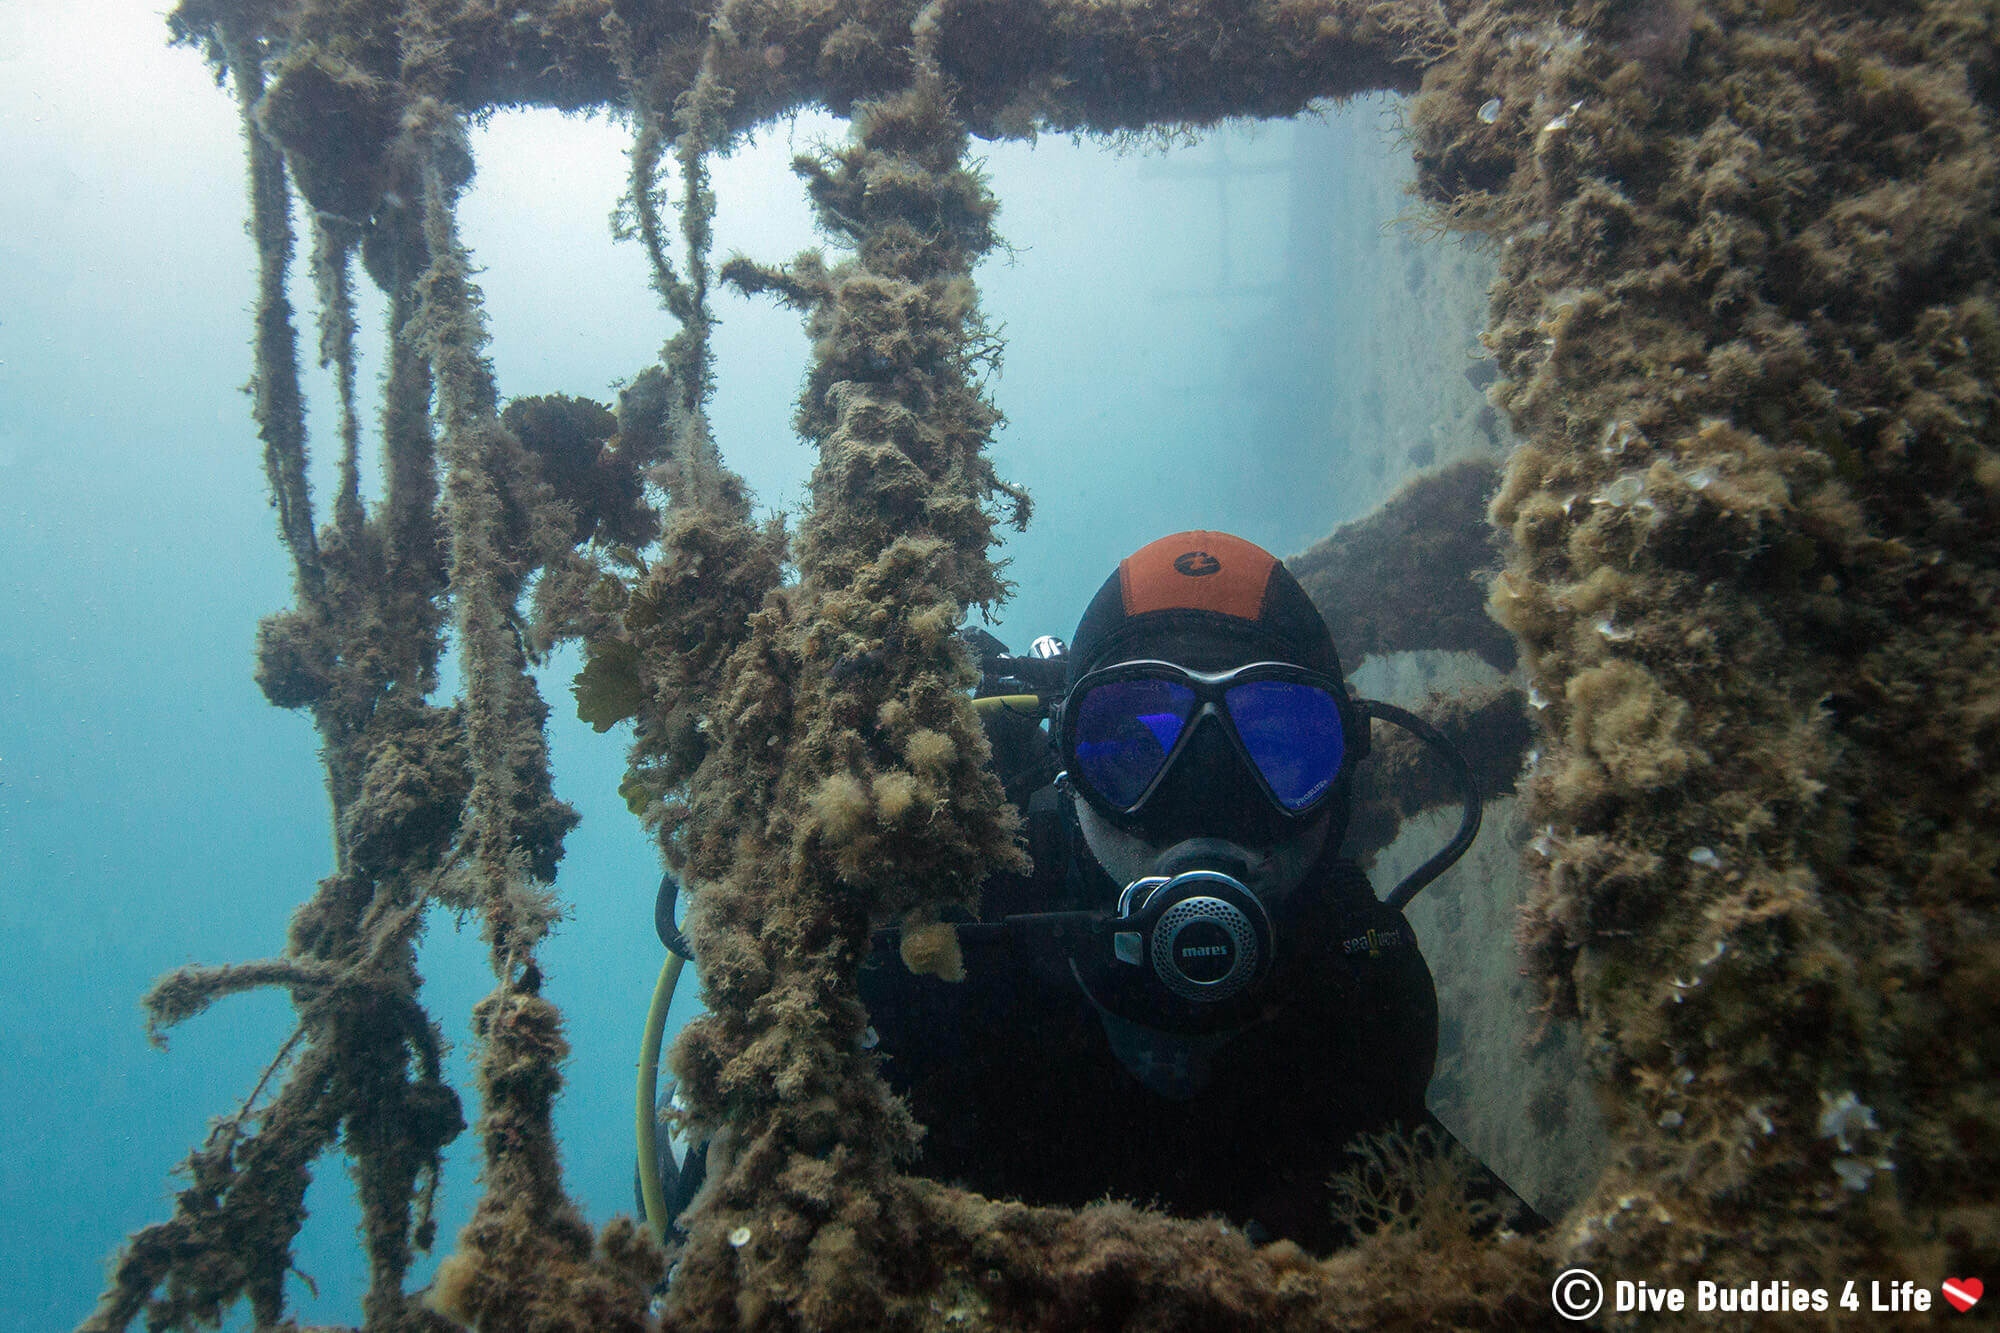 Scuba Diving Joey Peeking Through Some Of The Shipwreck Structure In Albania, Europe